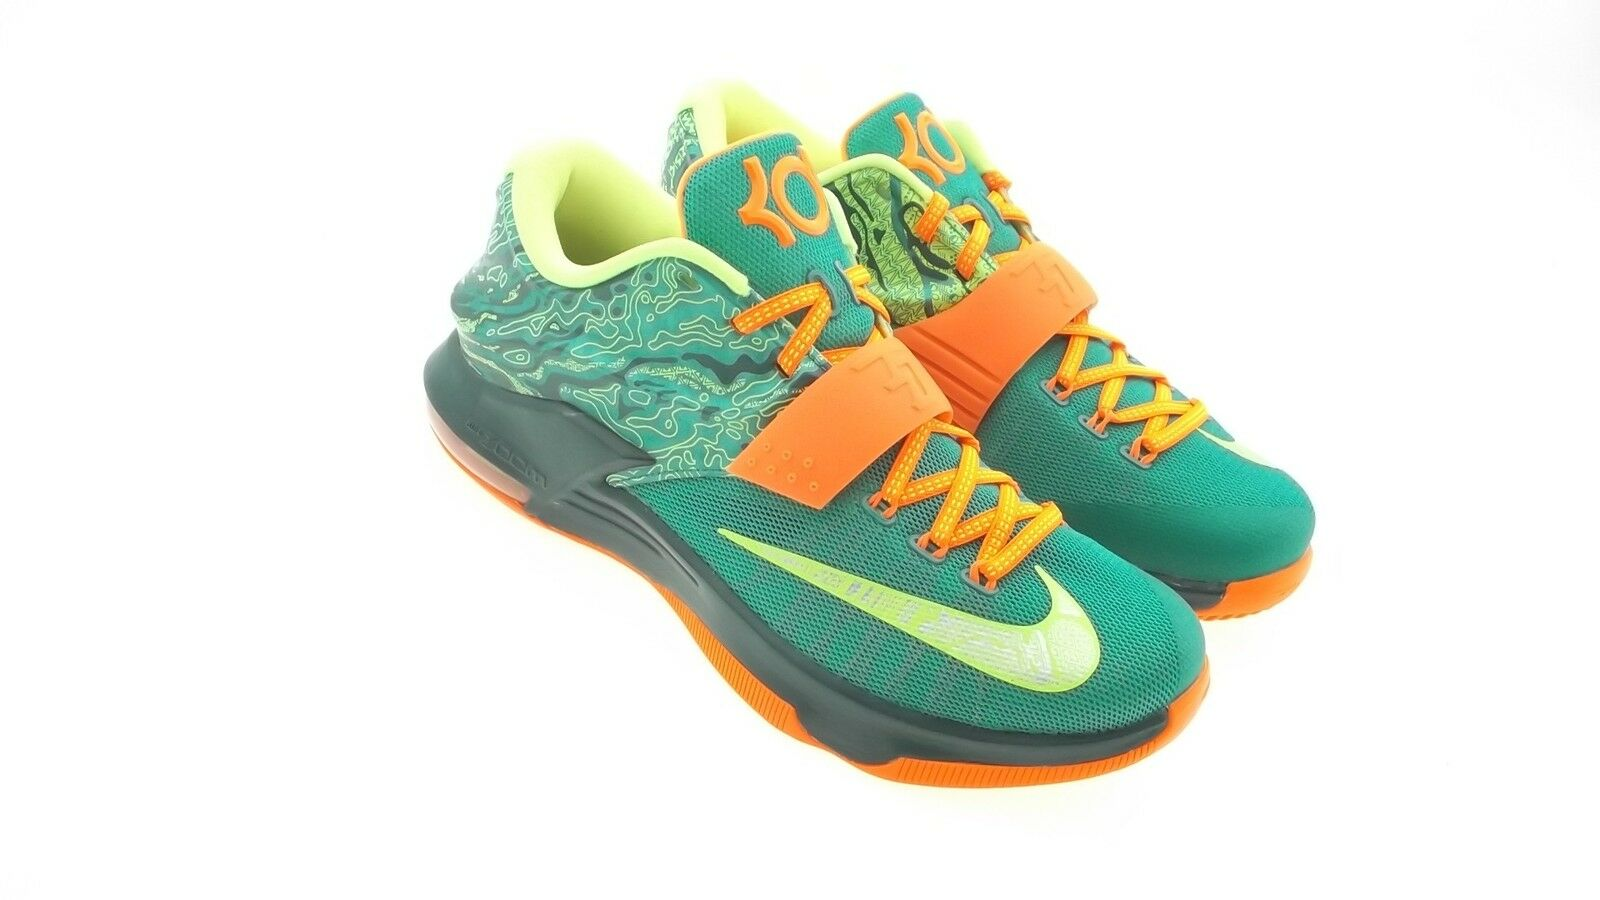 653996-303 Nike Men KD VII green emrld grn mtllc slvr The latest discount shoes for men and women